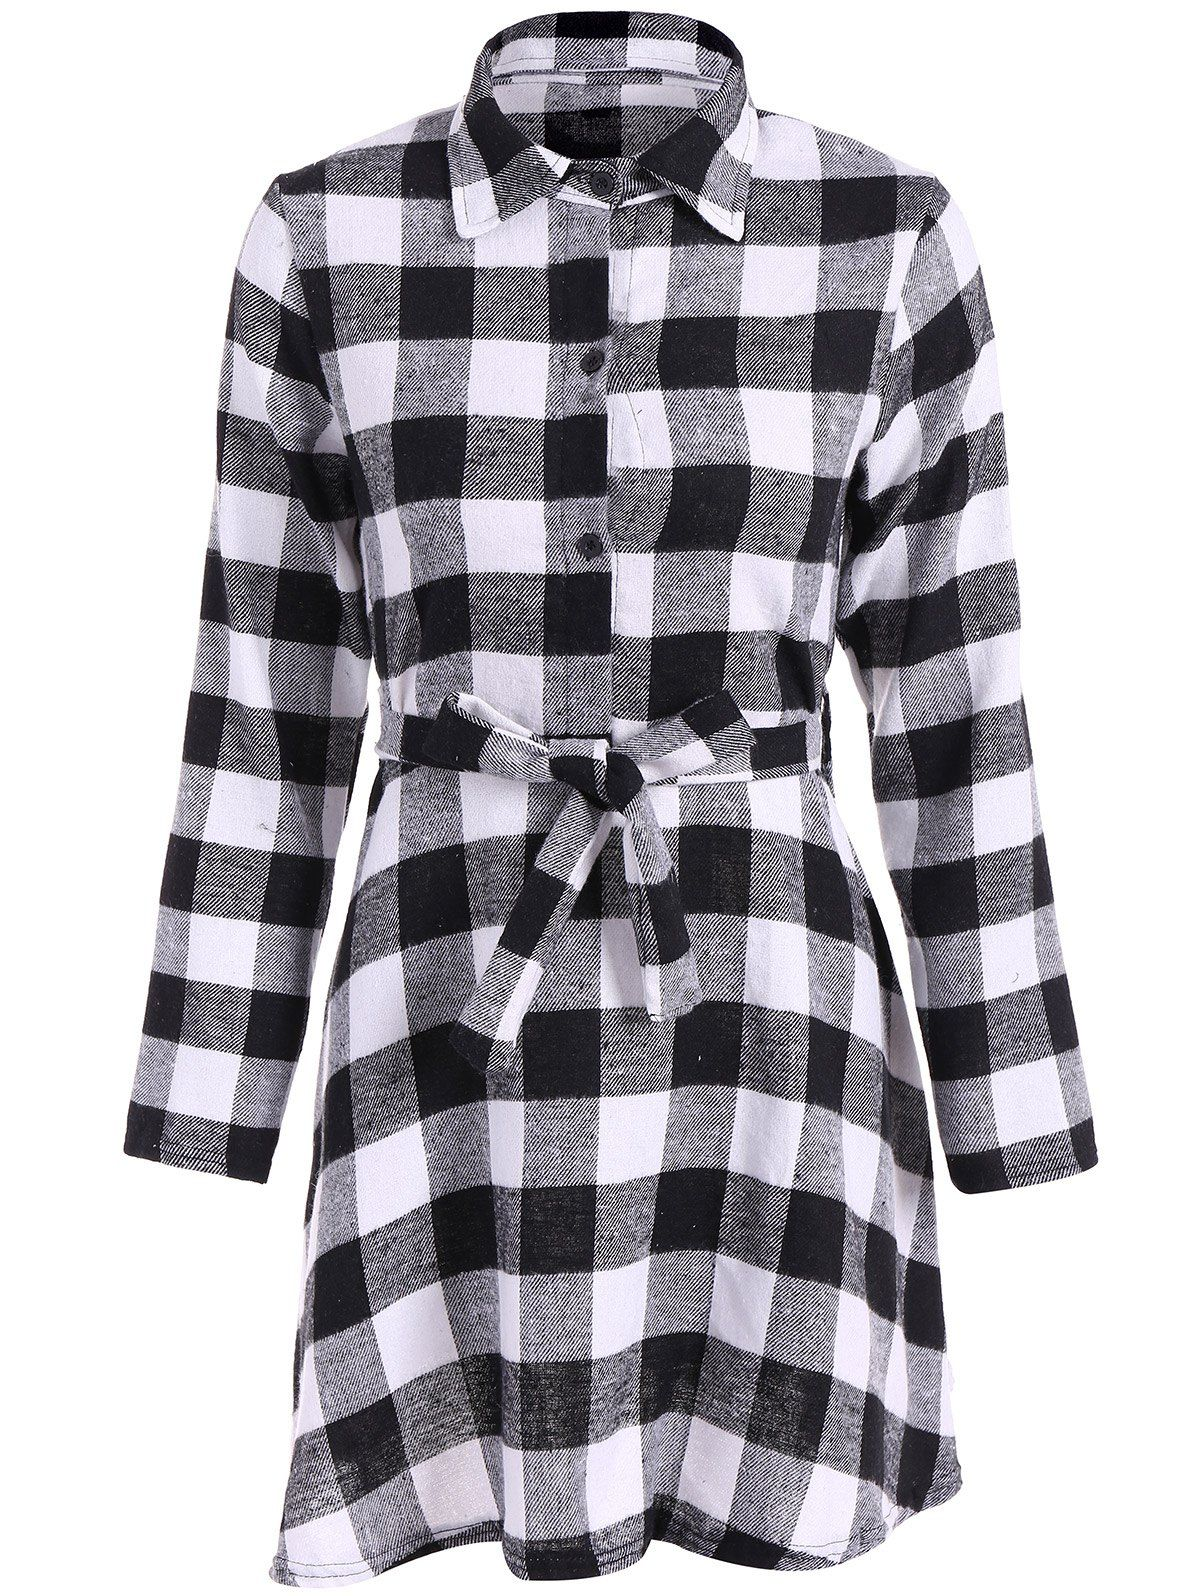 Flannel dress for women  Flannel Check Belted Shirt Dress  Mad For Plaid  Pinterest  Plaid